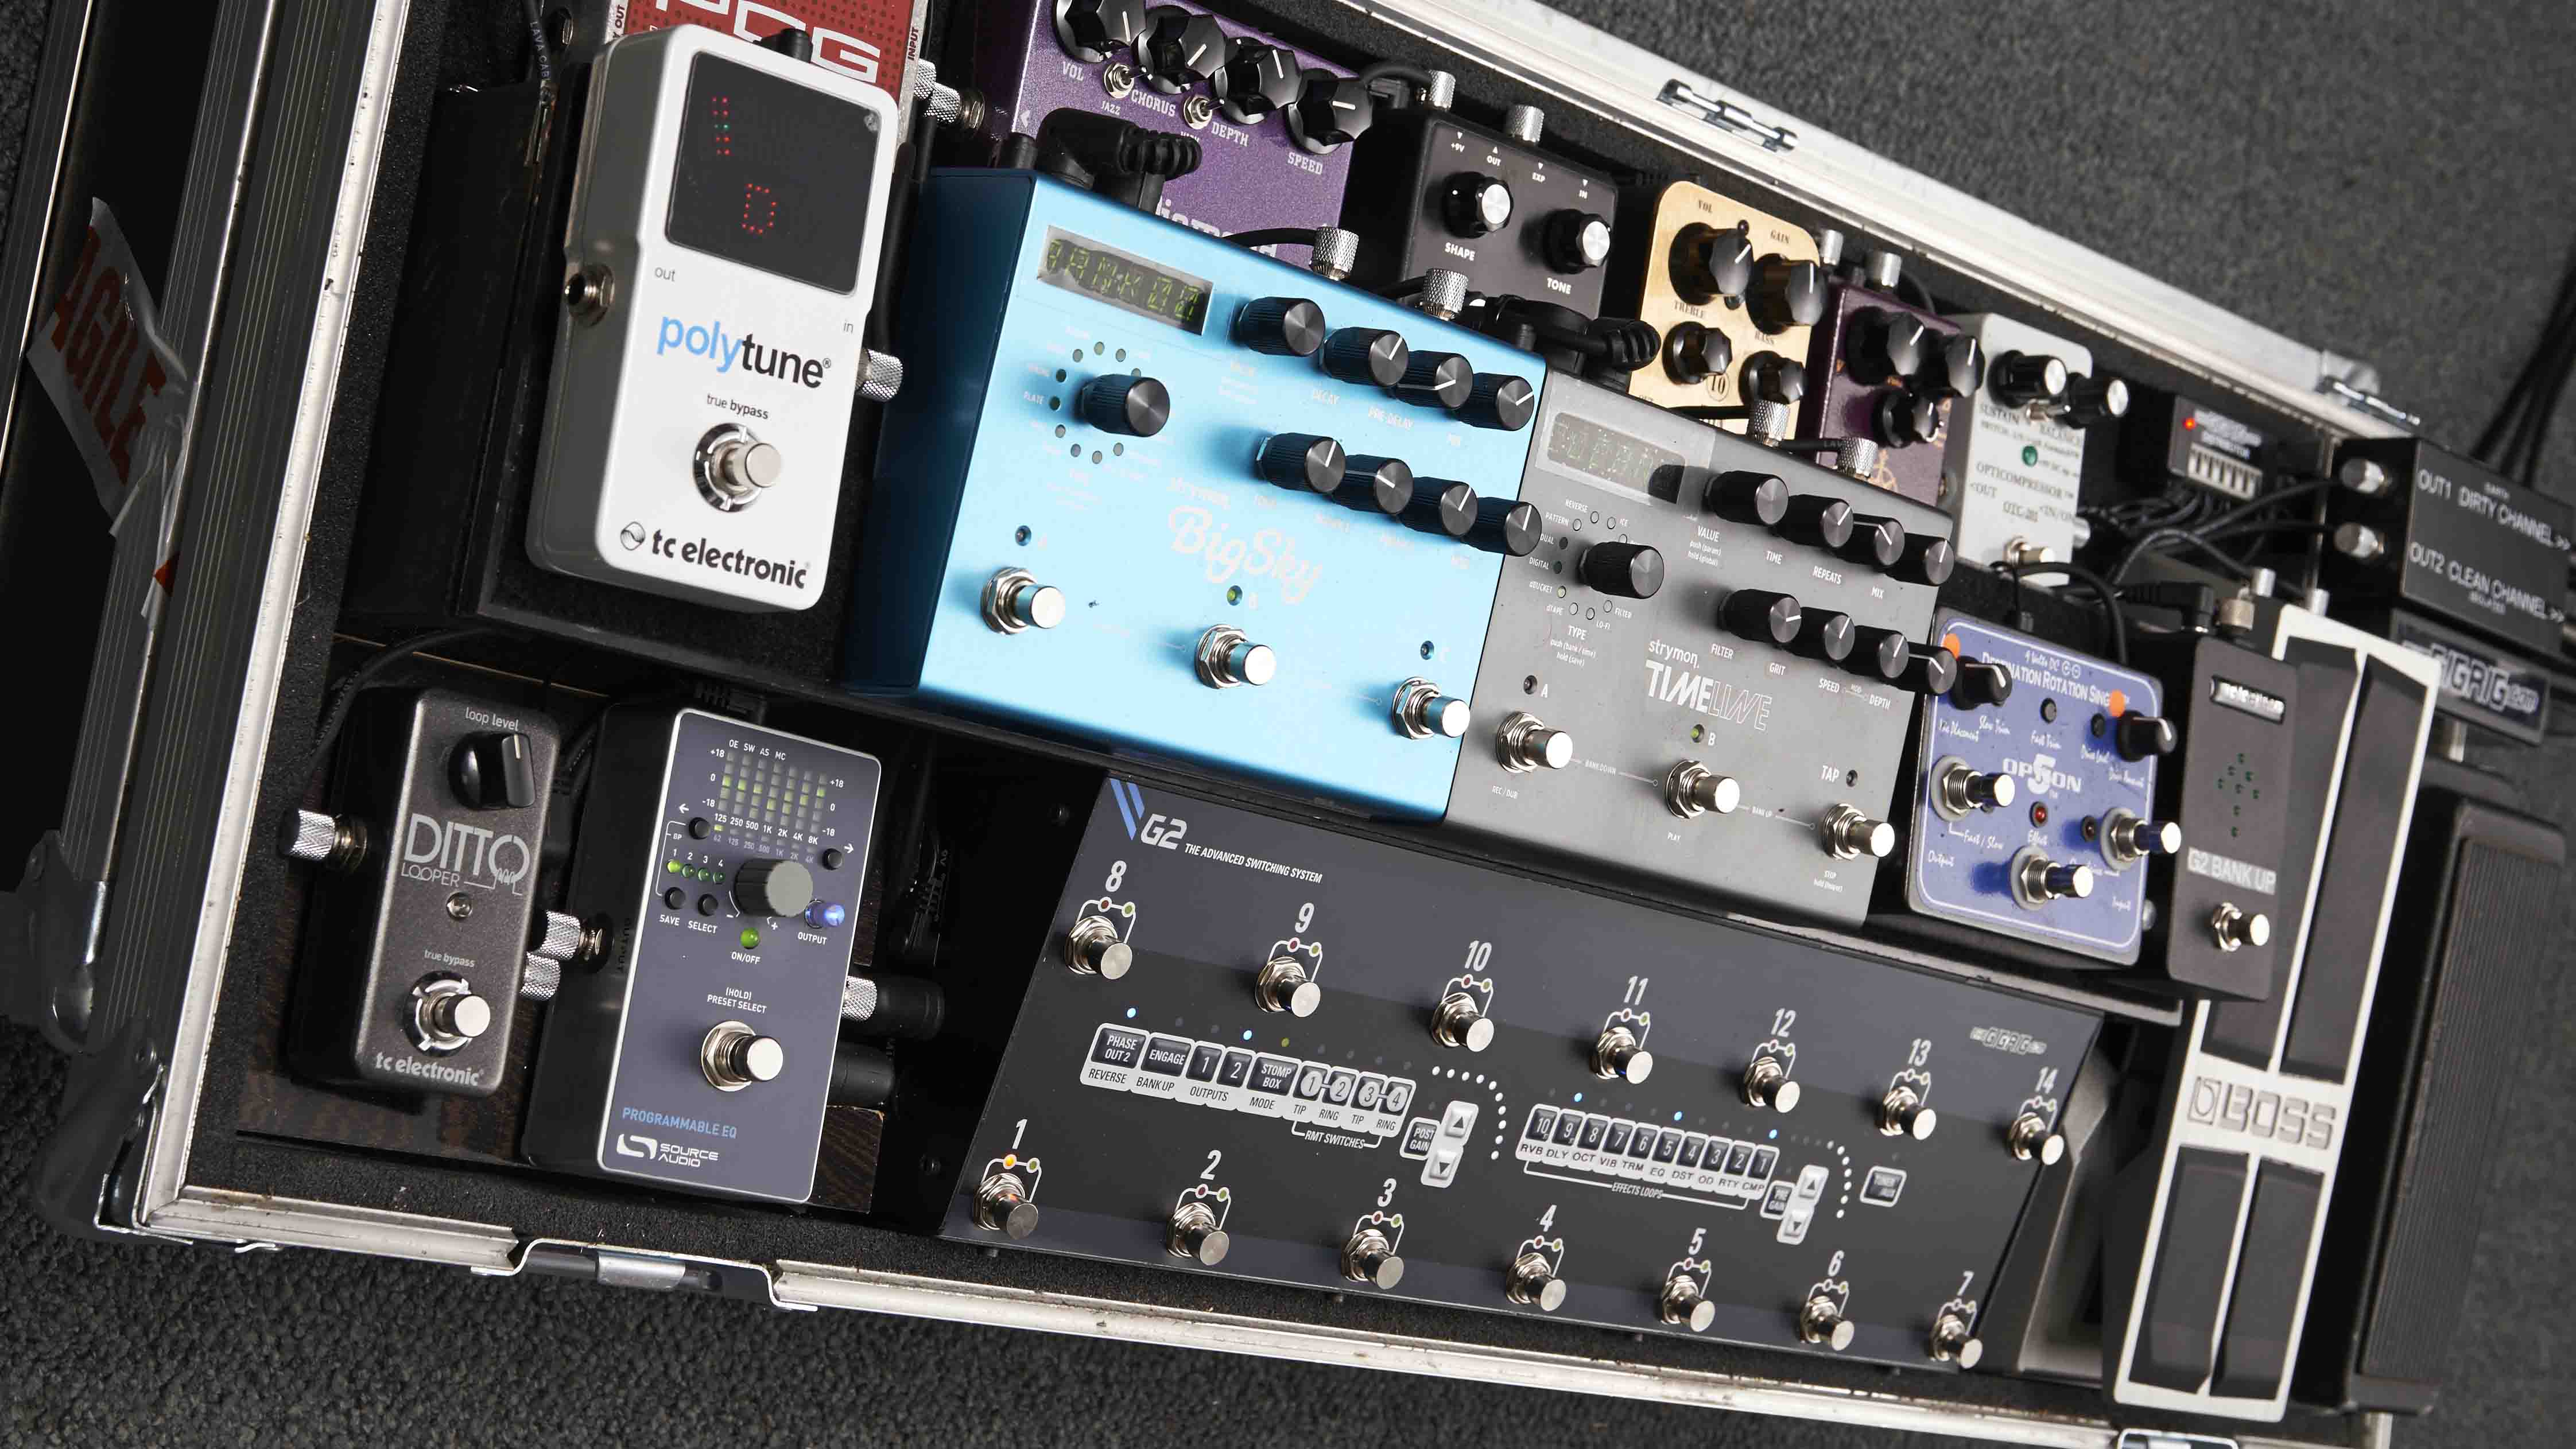 In pictures 36 pro guitarist pedalboards